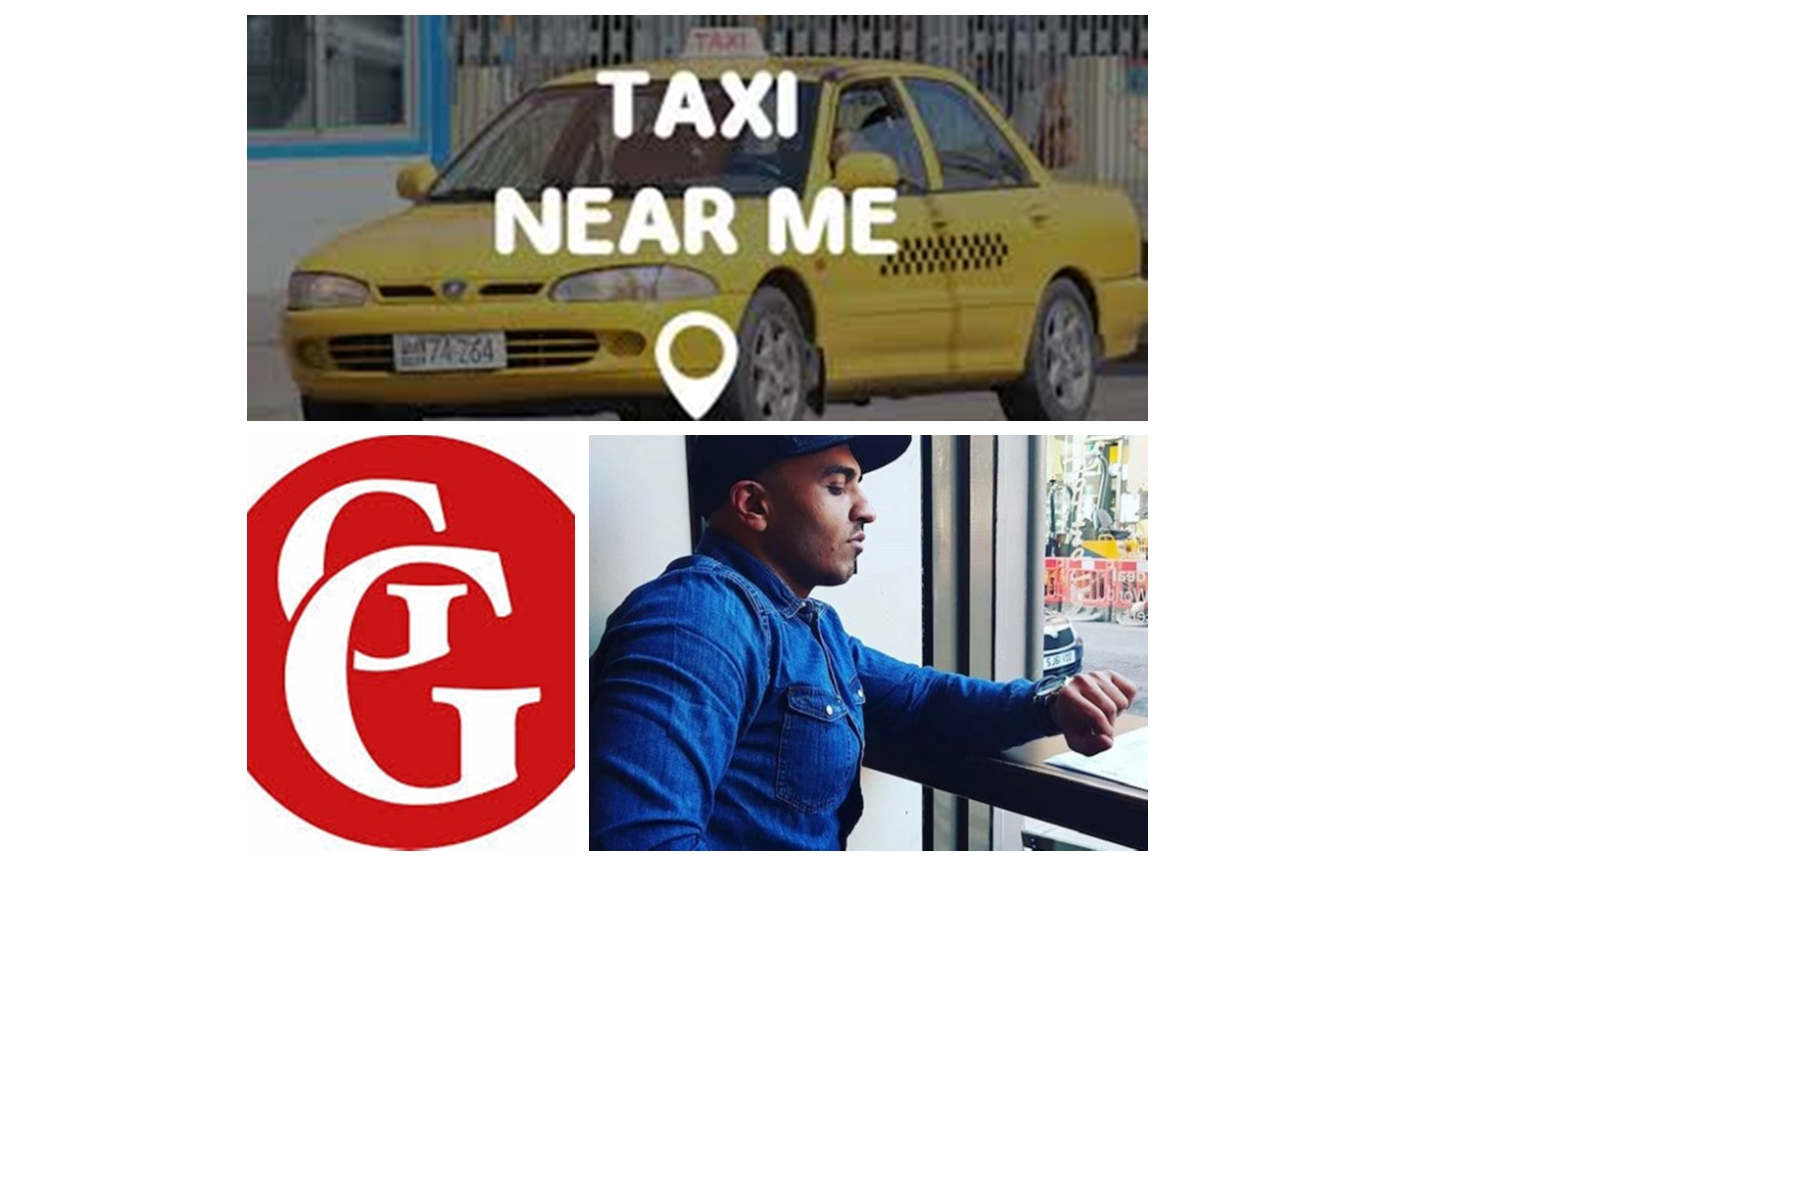 Taxi.Near.Me Plagiarise Fake News Article By Wretched News Rag Glasgow Guardian, Reporting Falsehoods About Dating Coach Addy Agame